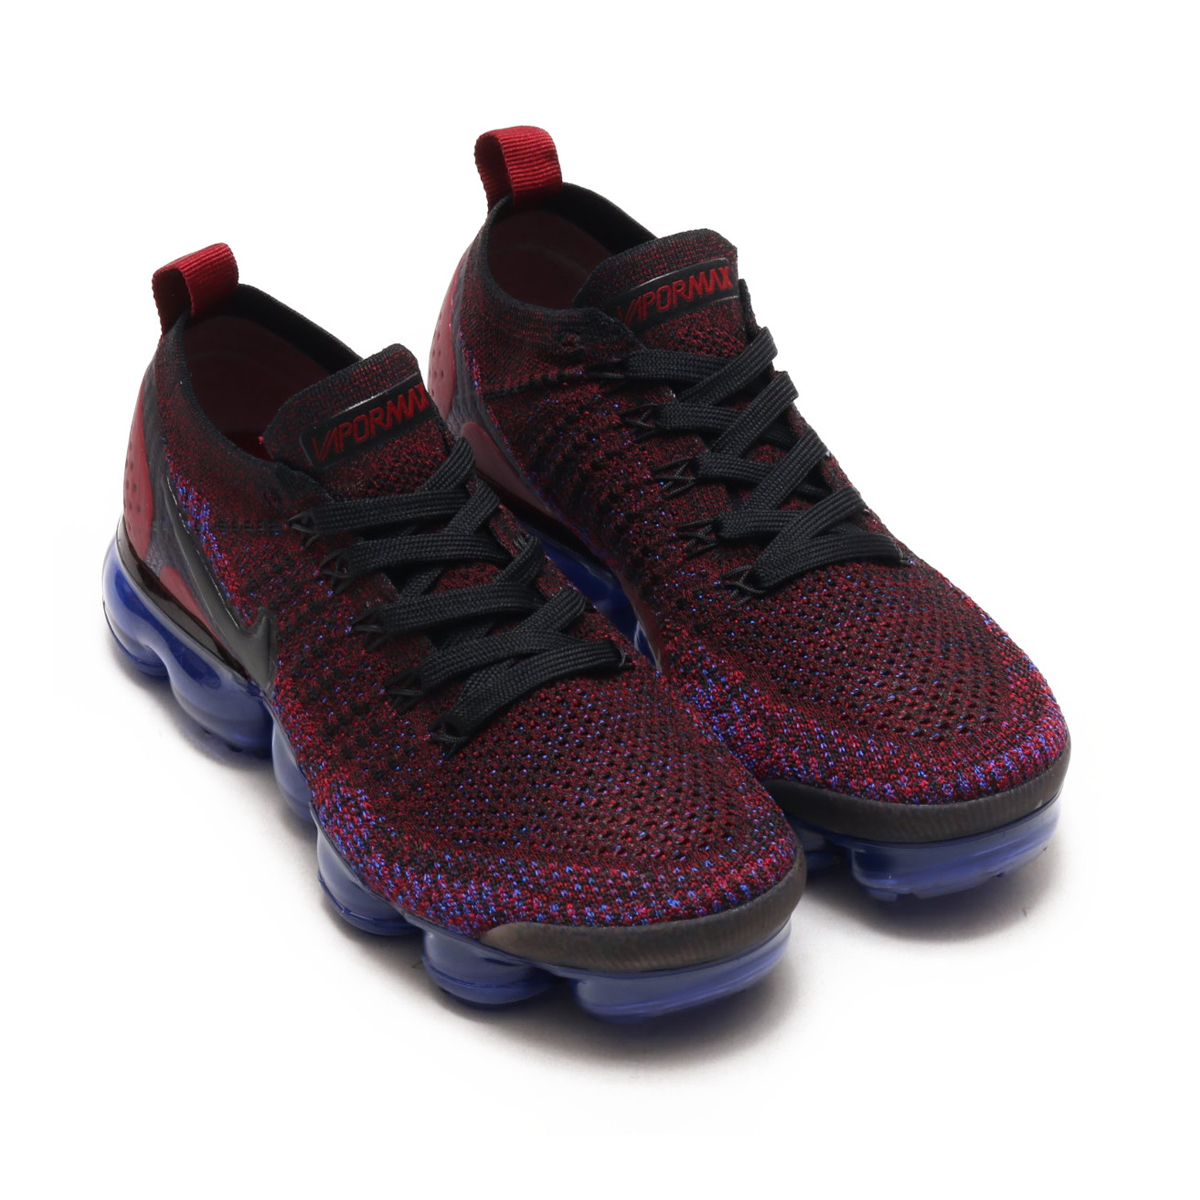 half off 8a276 a88df NIKE W AIR VAPORMAX FLYKNIT 2 (Nike women air vapor max fried food knit 2)  BLACK/BLACK-TEAM RED-RACER BLUE 18SS-S